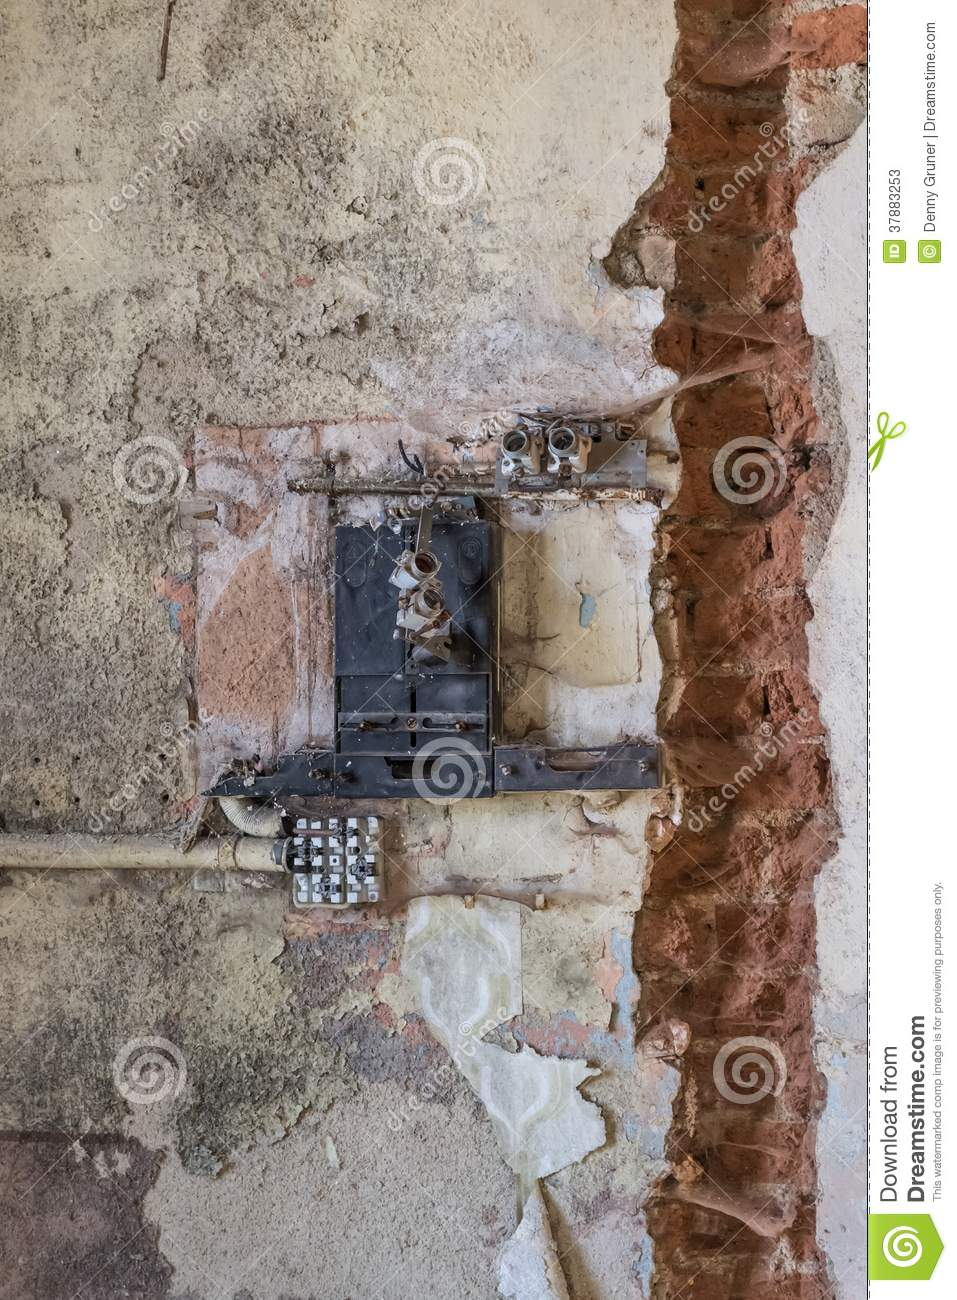 [QNCB_7524]  Old fuse box stock image. Image of construction, supply - 37883253 | Destroyed Fuse Box |  | Dreamstime.com